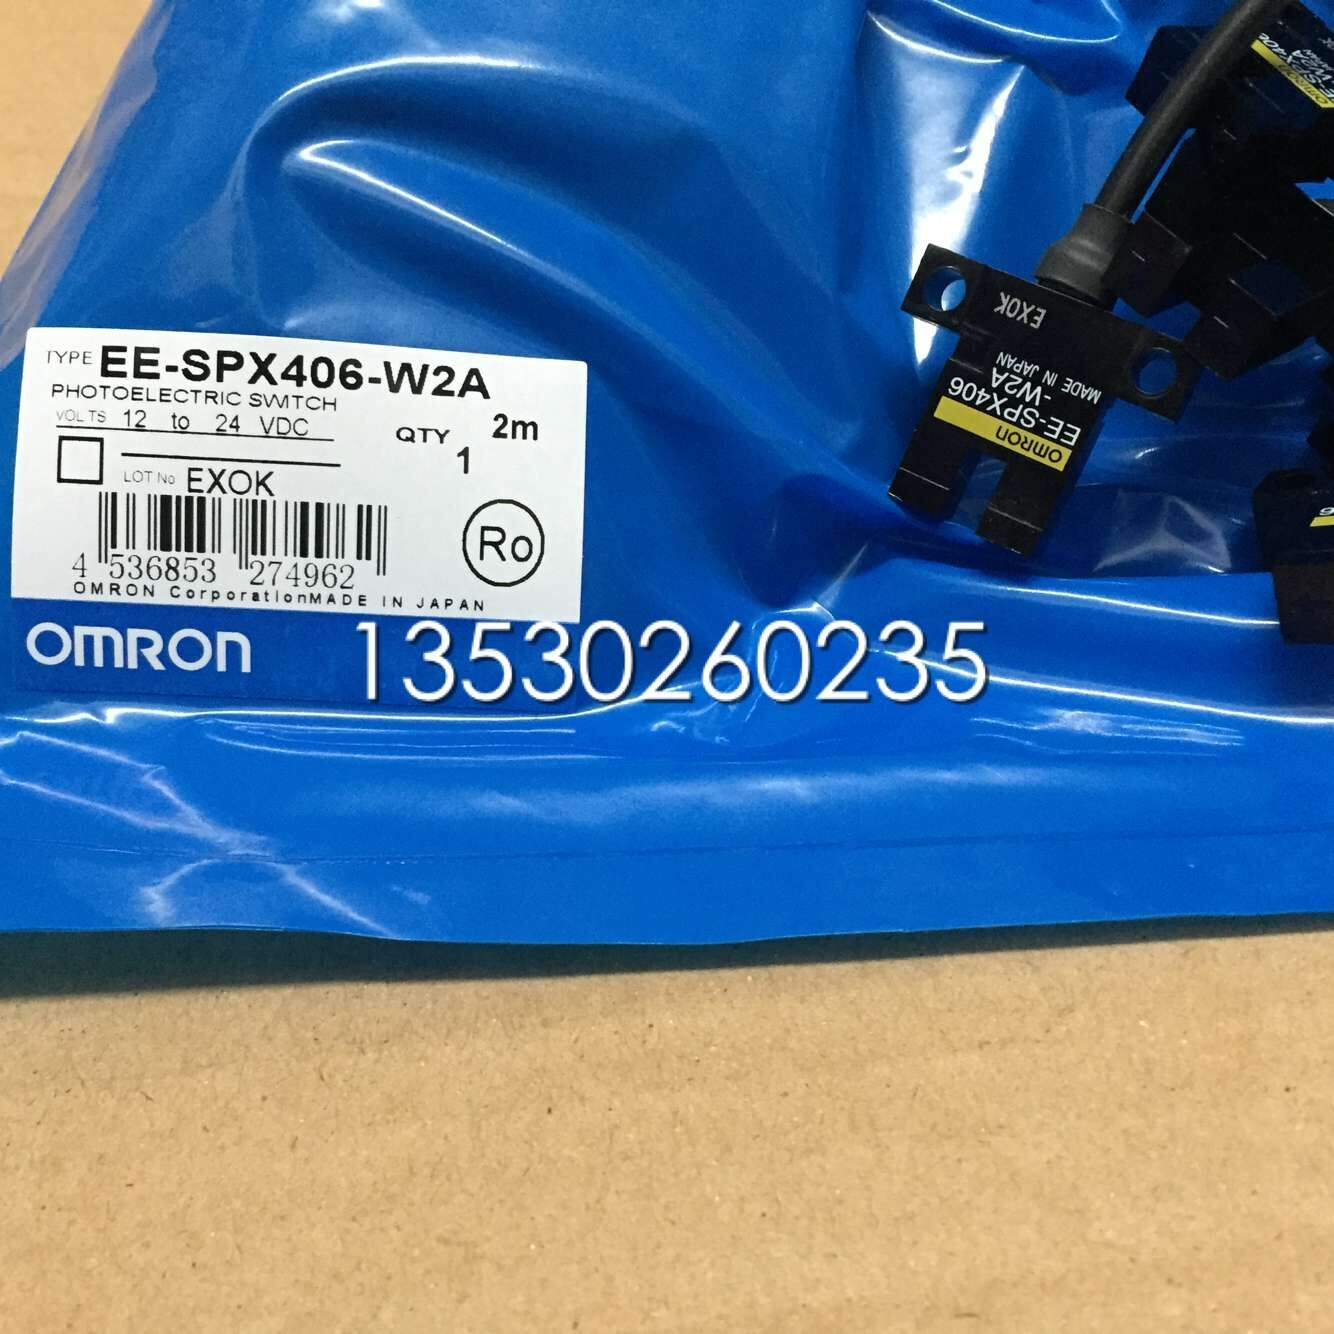 EE-SPX306-W2A  EE-SPX406-W2A 2M  Photoelectric Switch ee sa801a